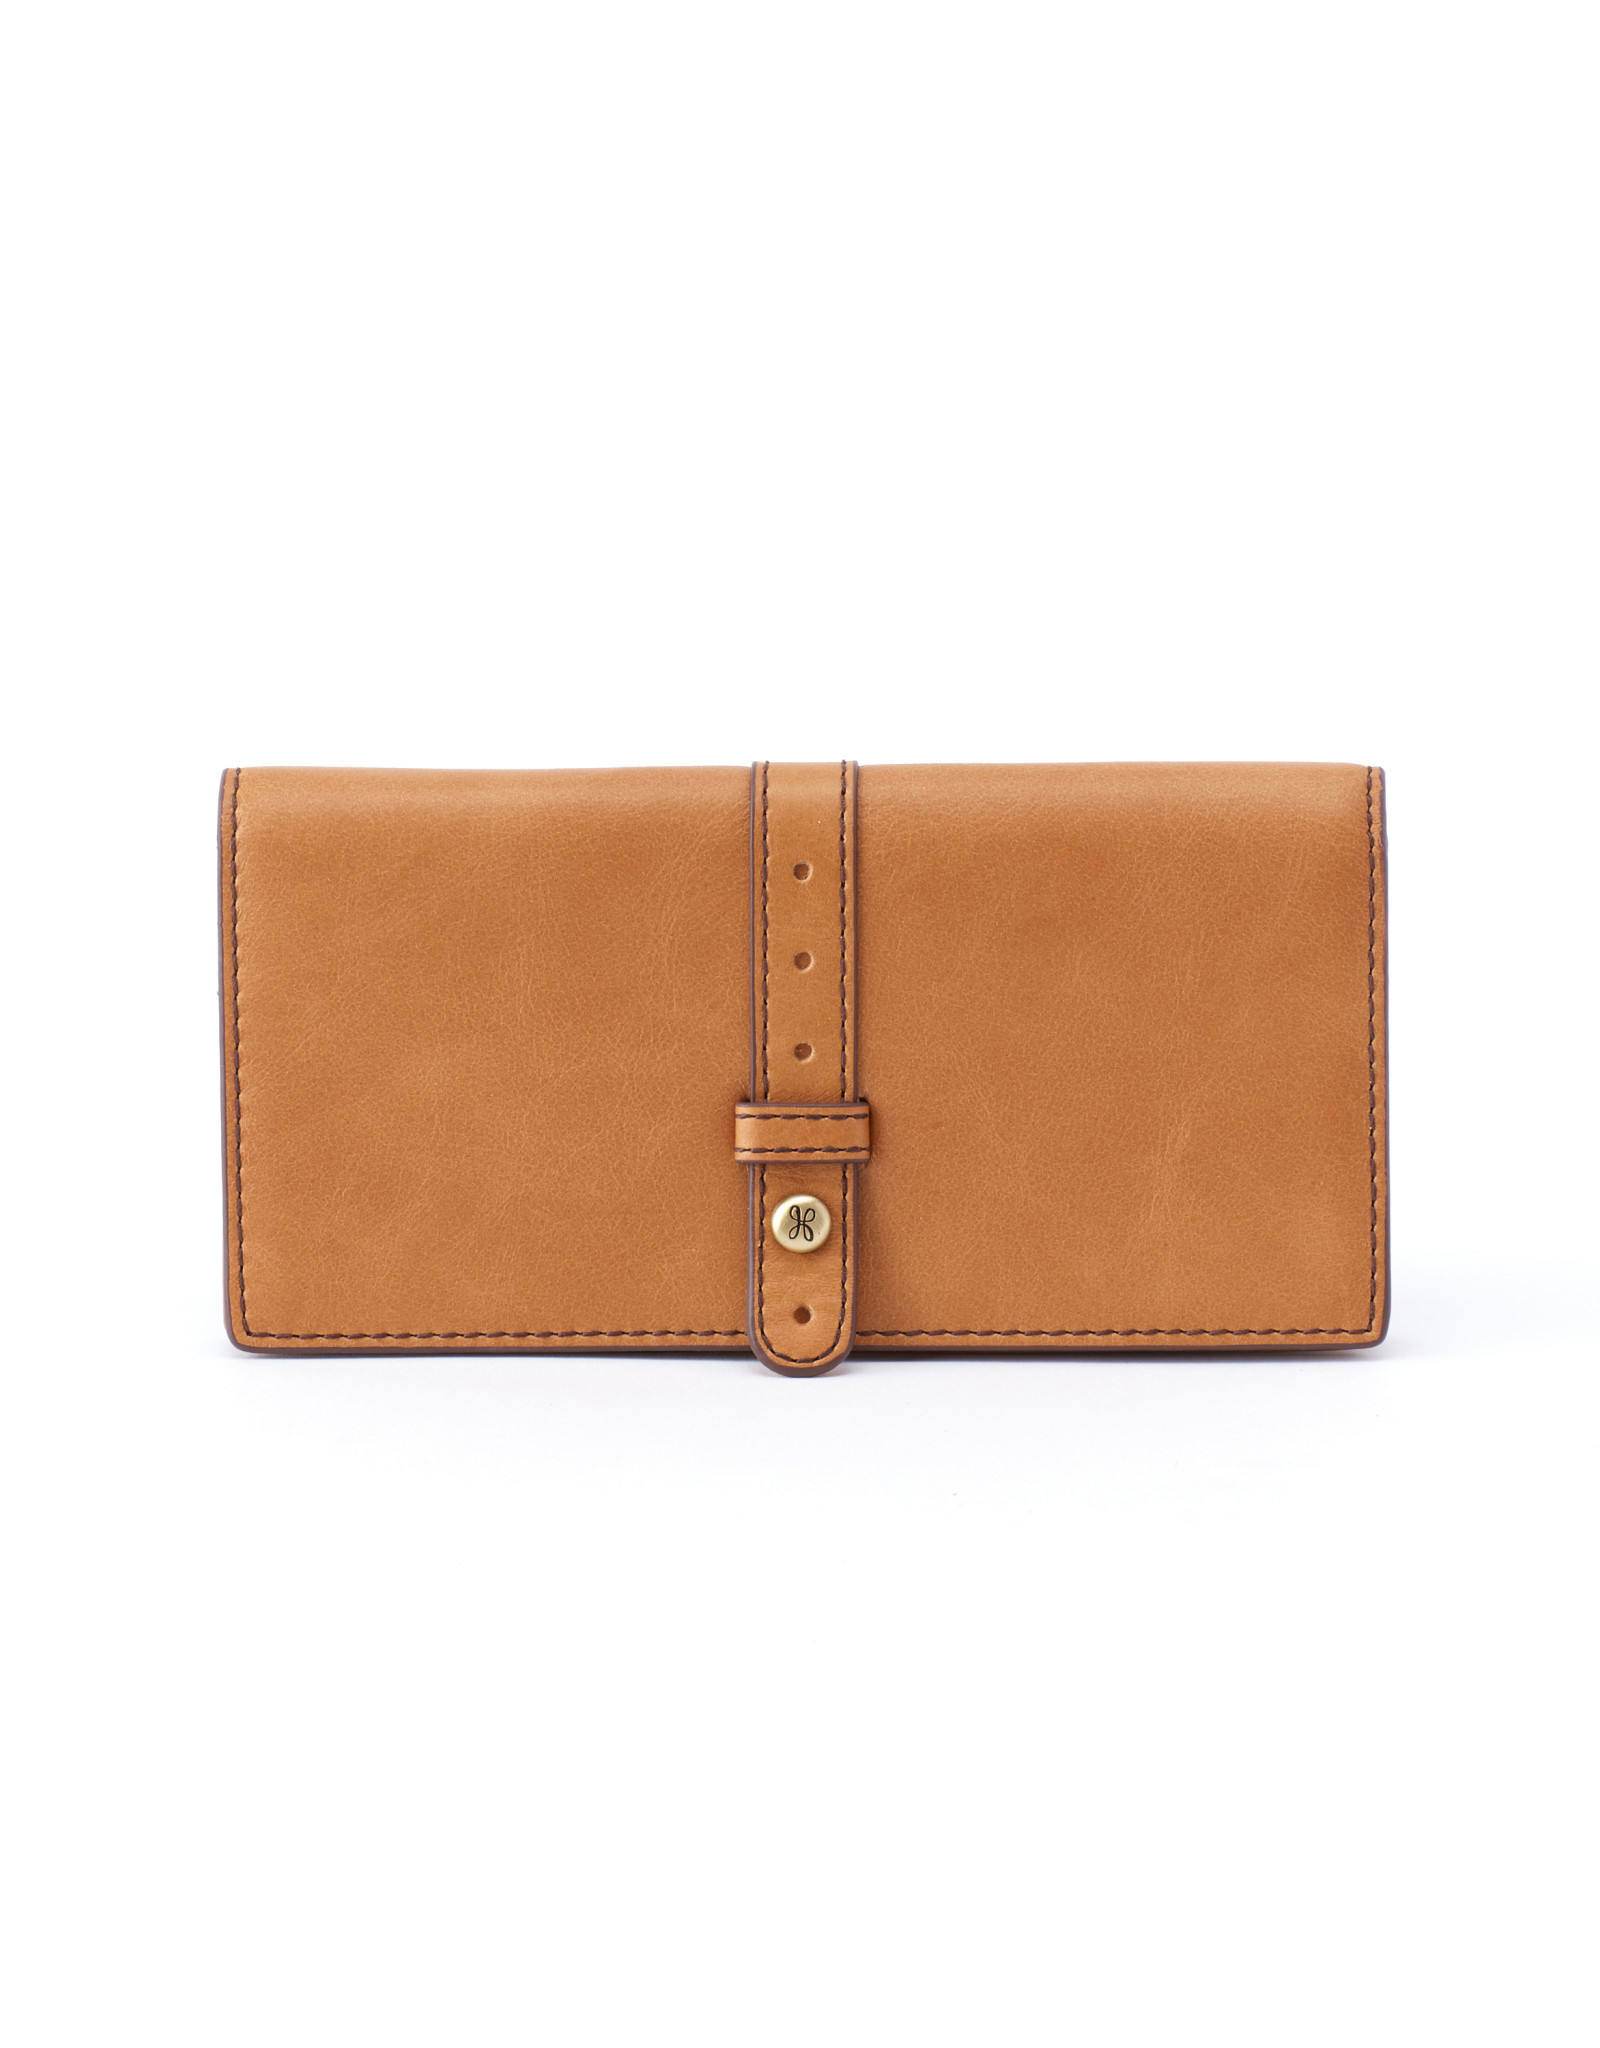 HOBO Alta Wallet - Honey